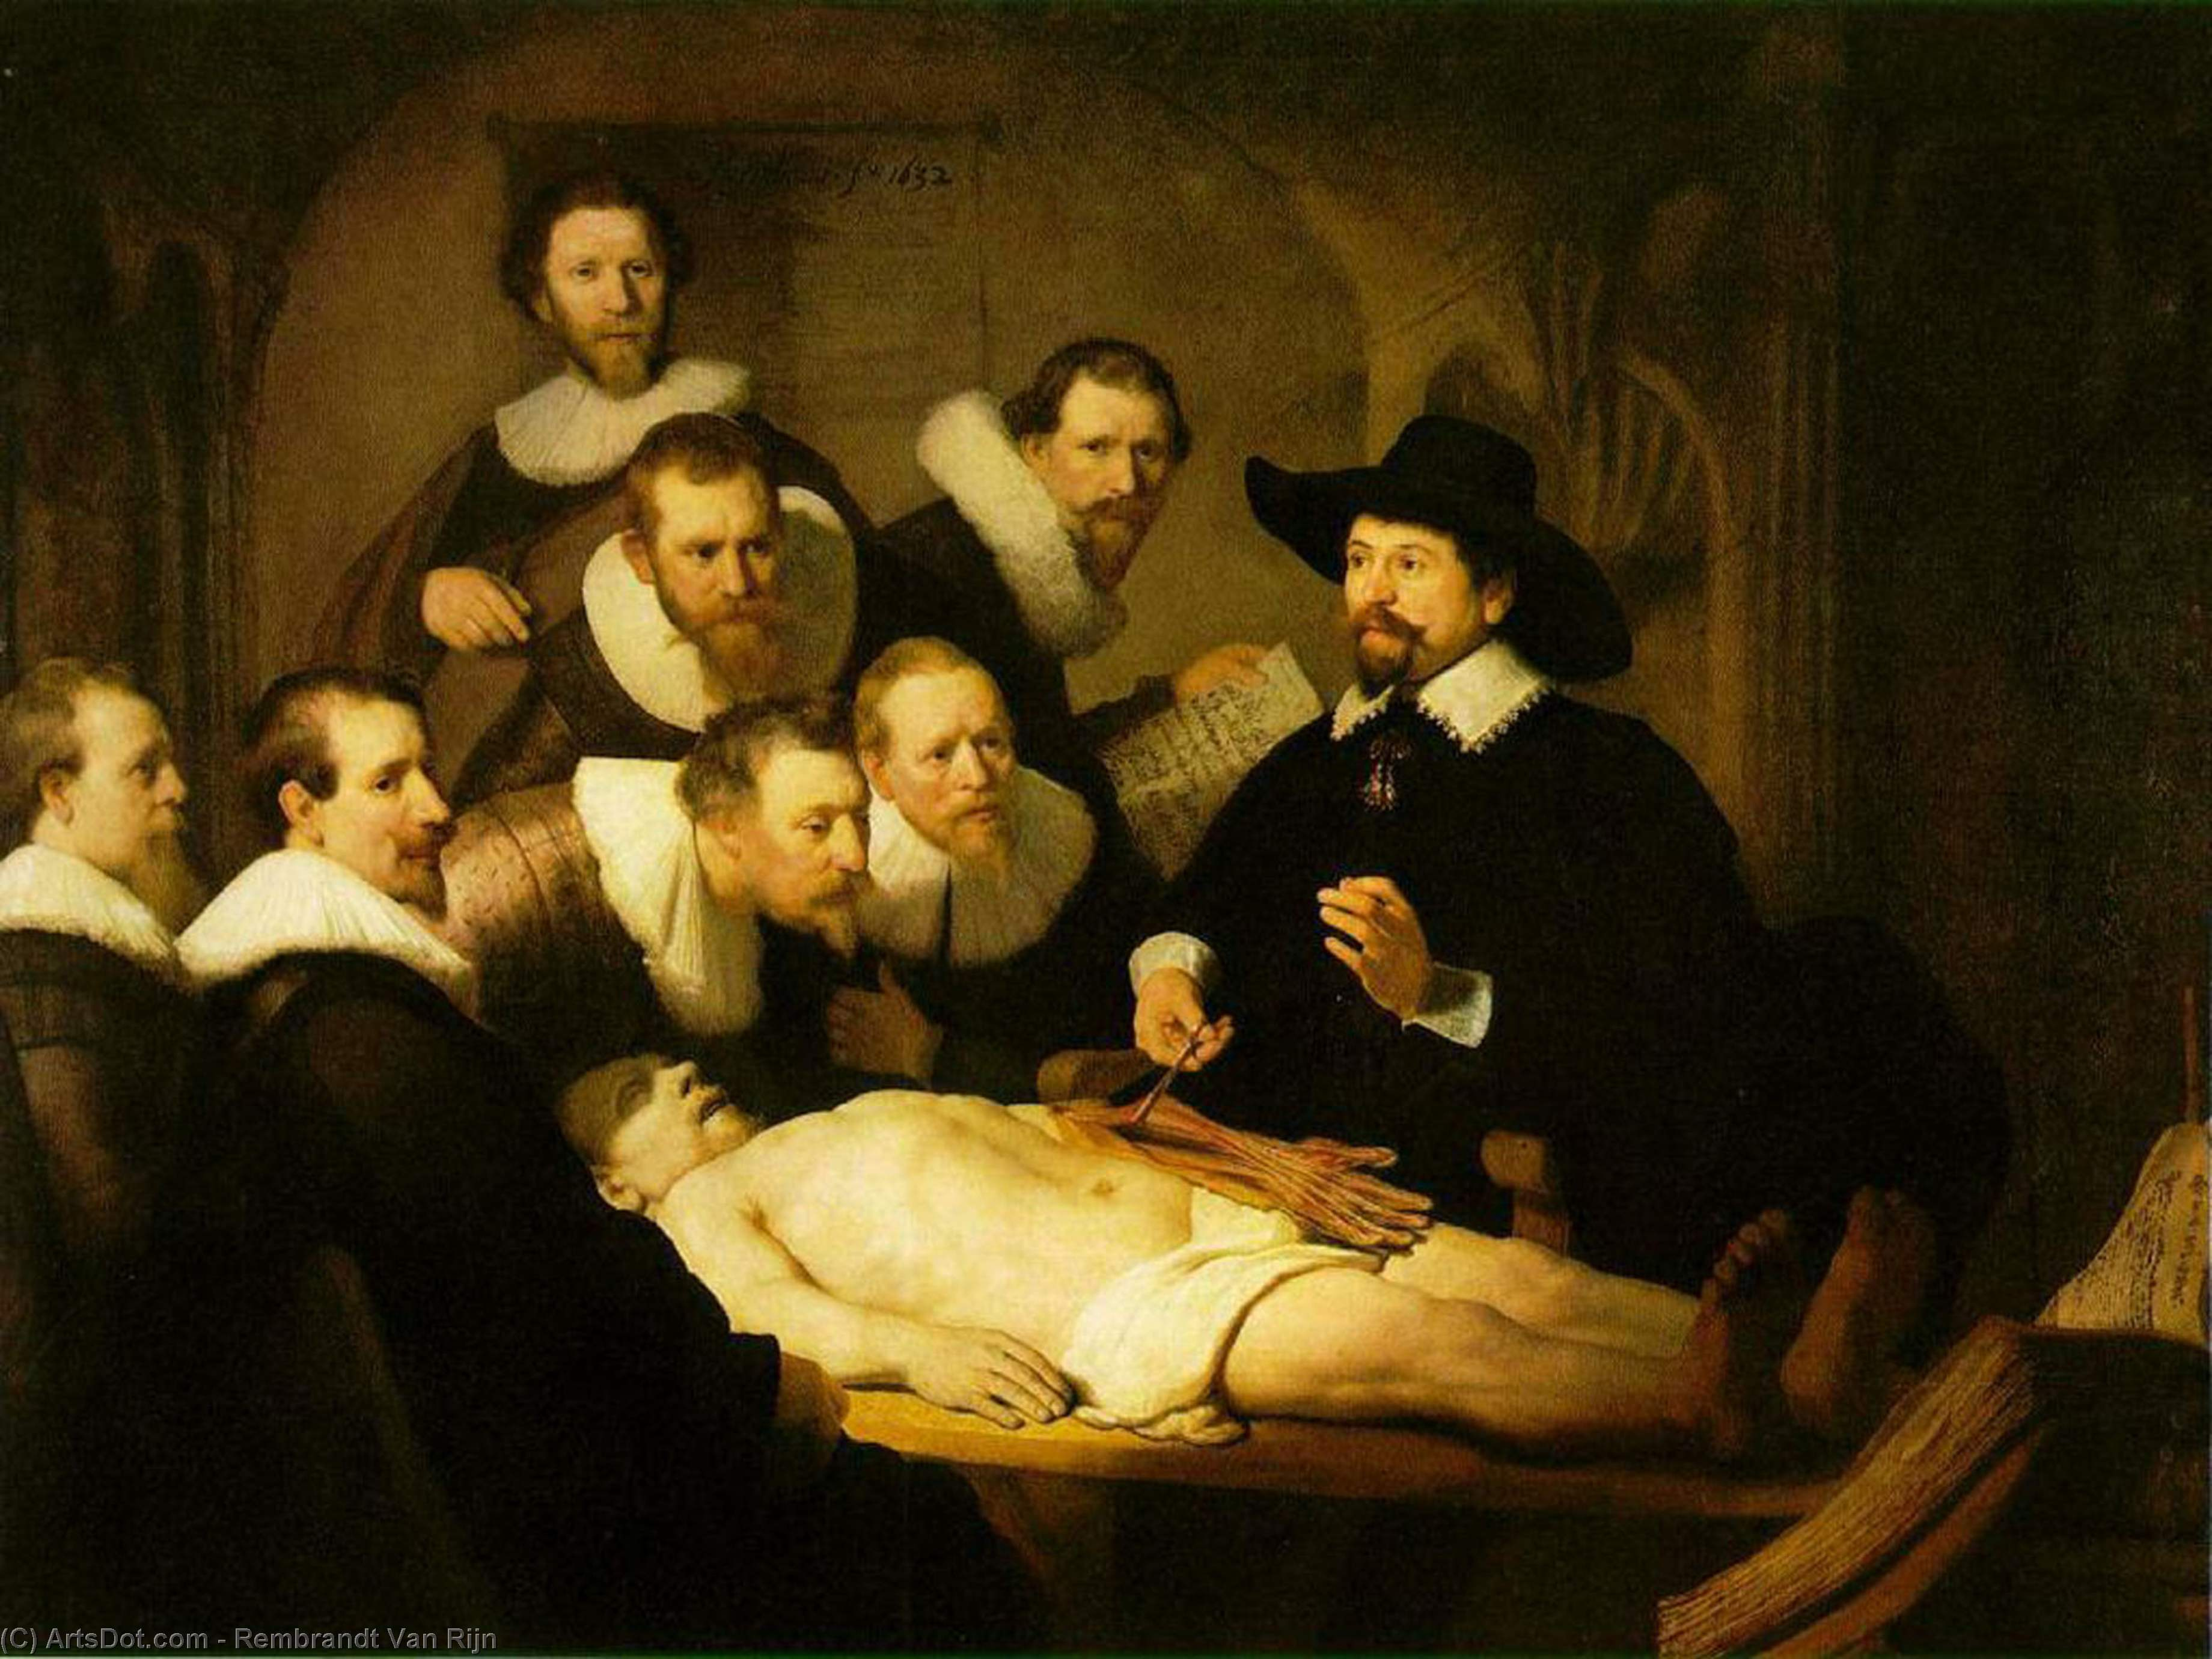 Order Paintings Reproductions | The Anatomy Lecture of Dr. Nicolaes Tulp [1632], 1632 by Rembrandt Van Rijn (1606-1669, Netherlands) | ArtsDot.com